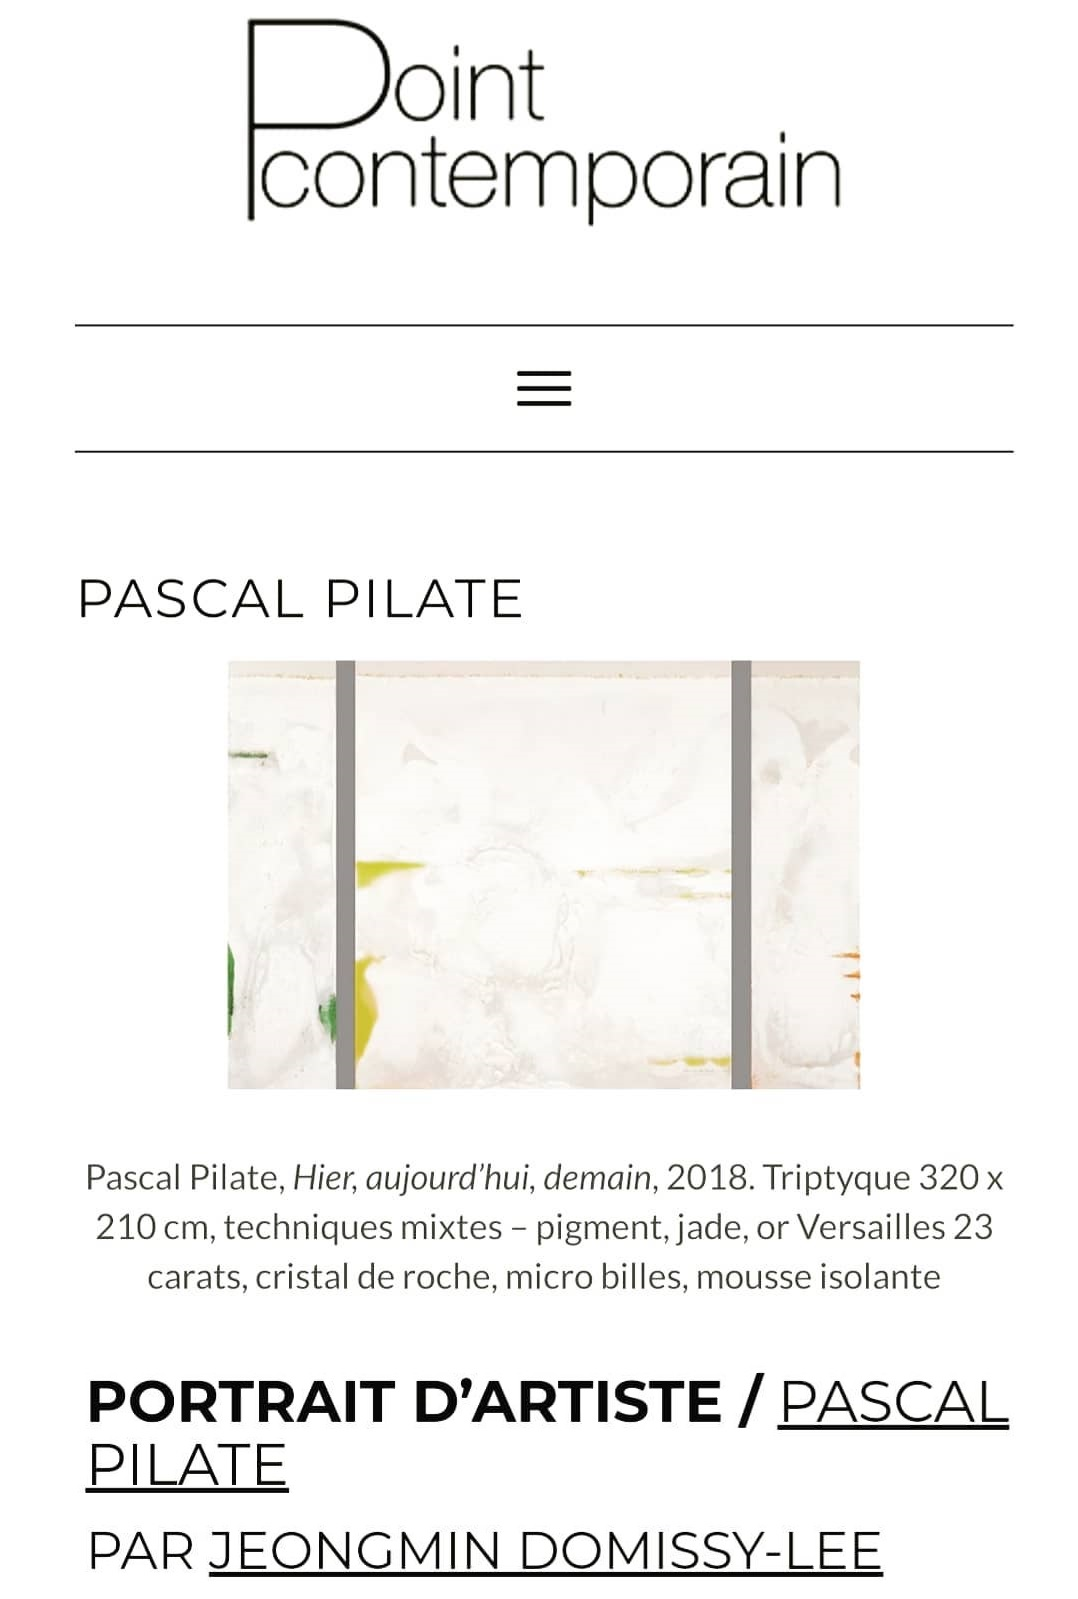 PORTRAIT D'ARTISTE – PASCAL PILATE, POINT CONTEMPORAIN 2020